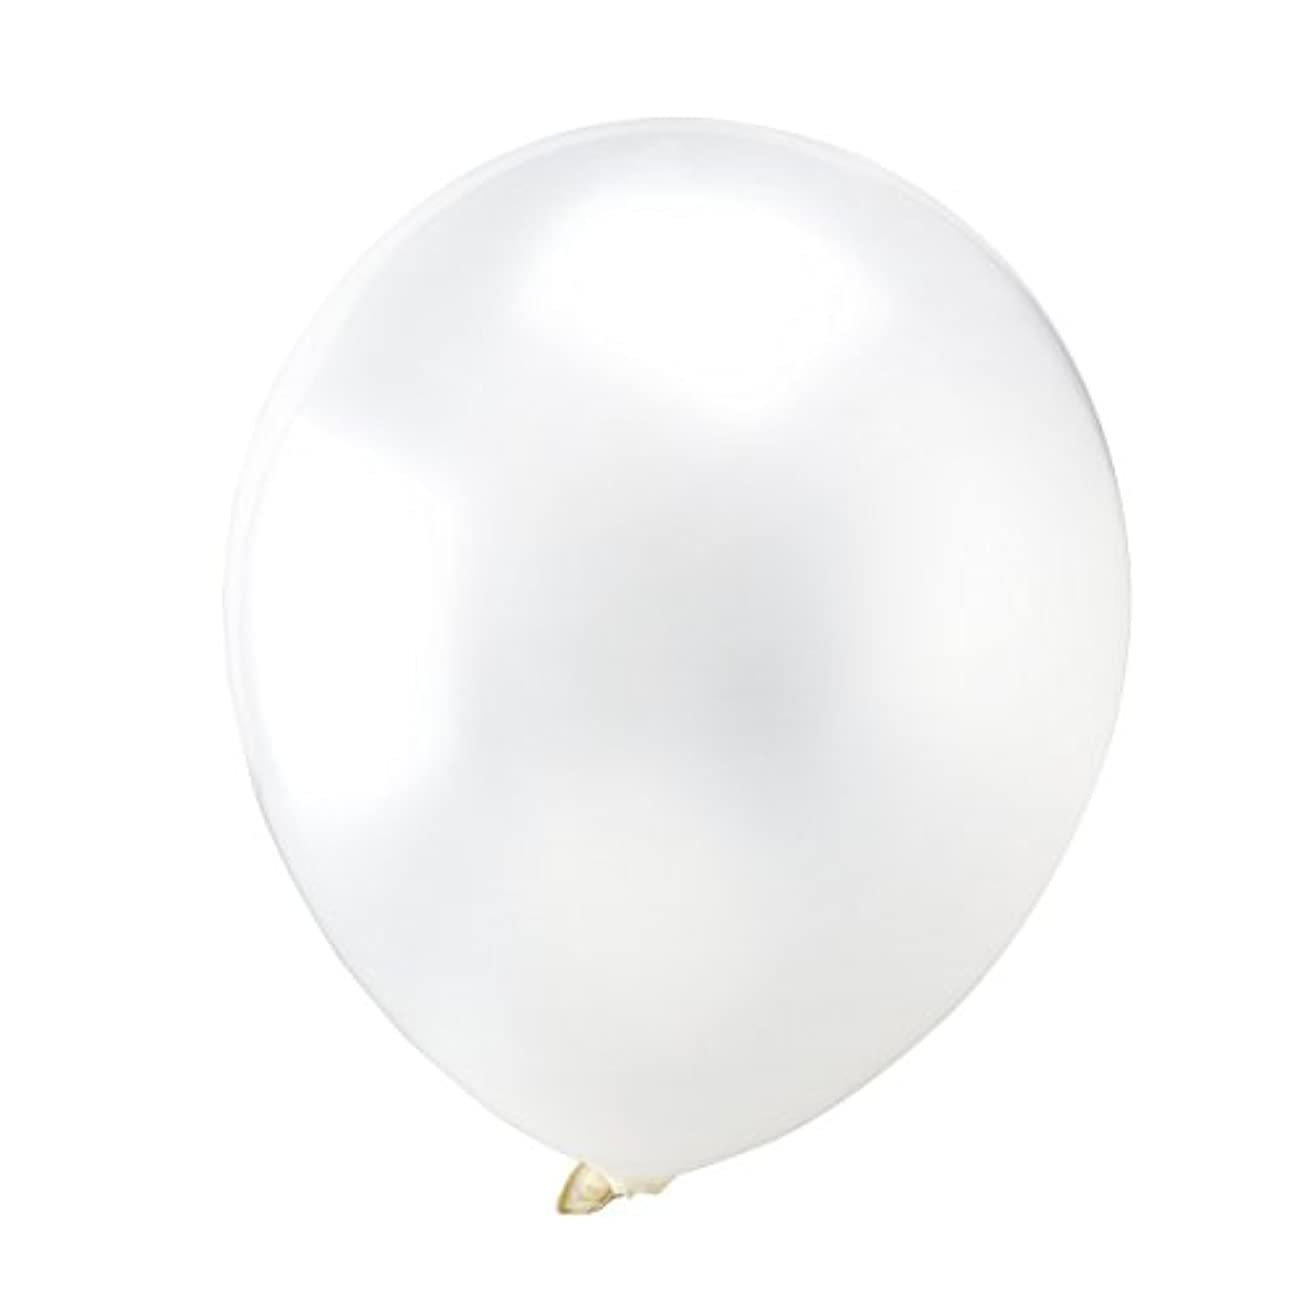 OULII White Latex Metallic Balloons, 12 Inch, Pack of 100